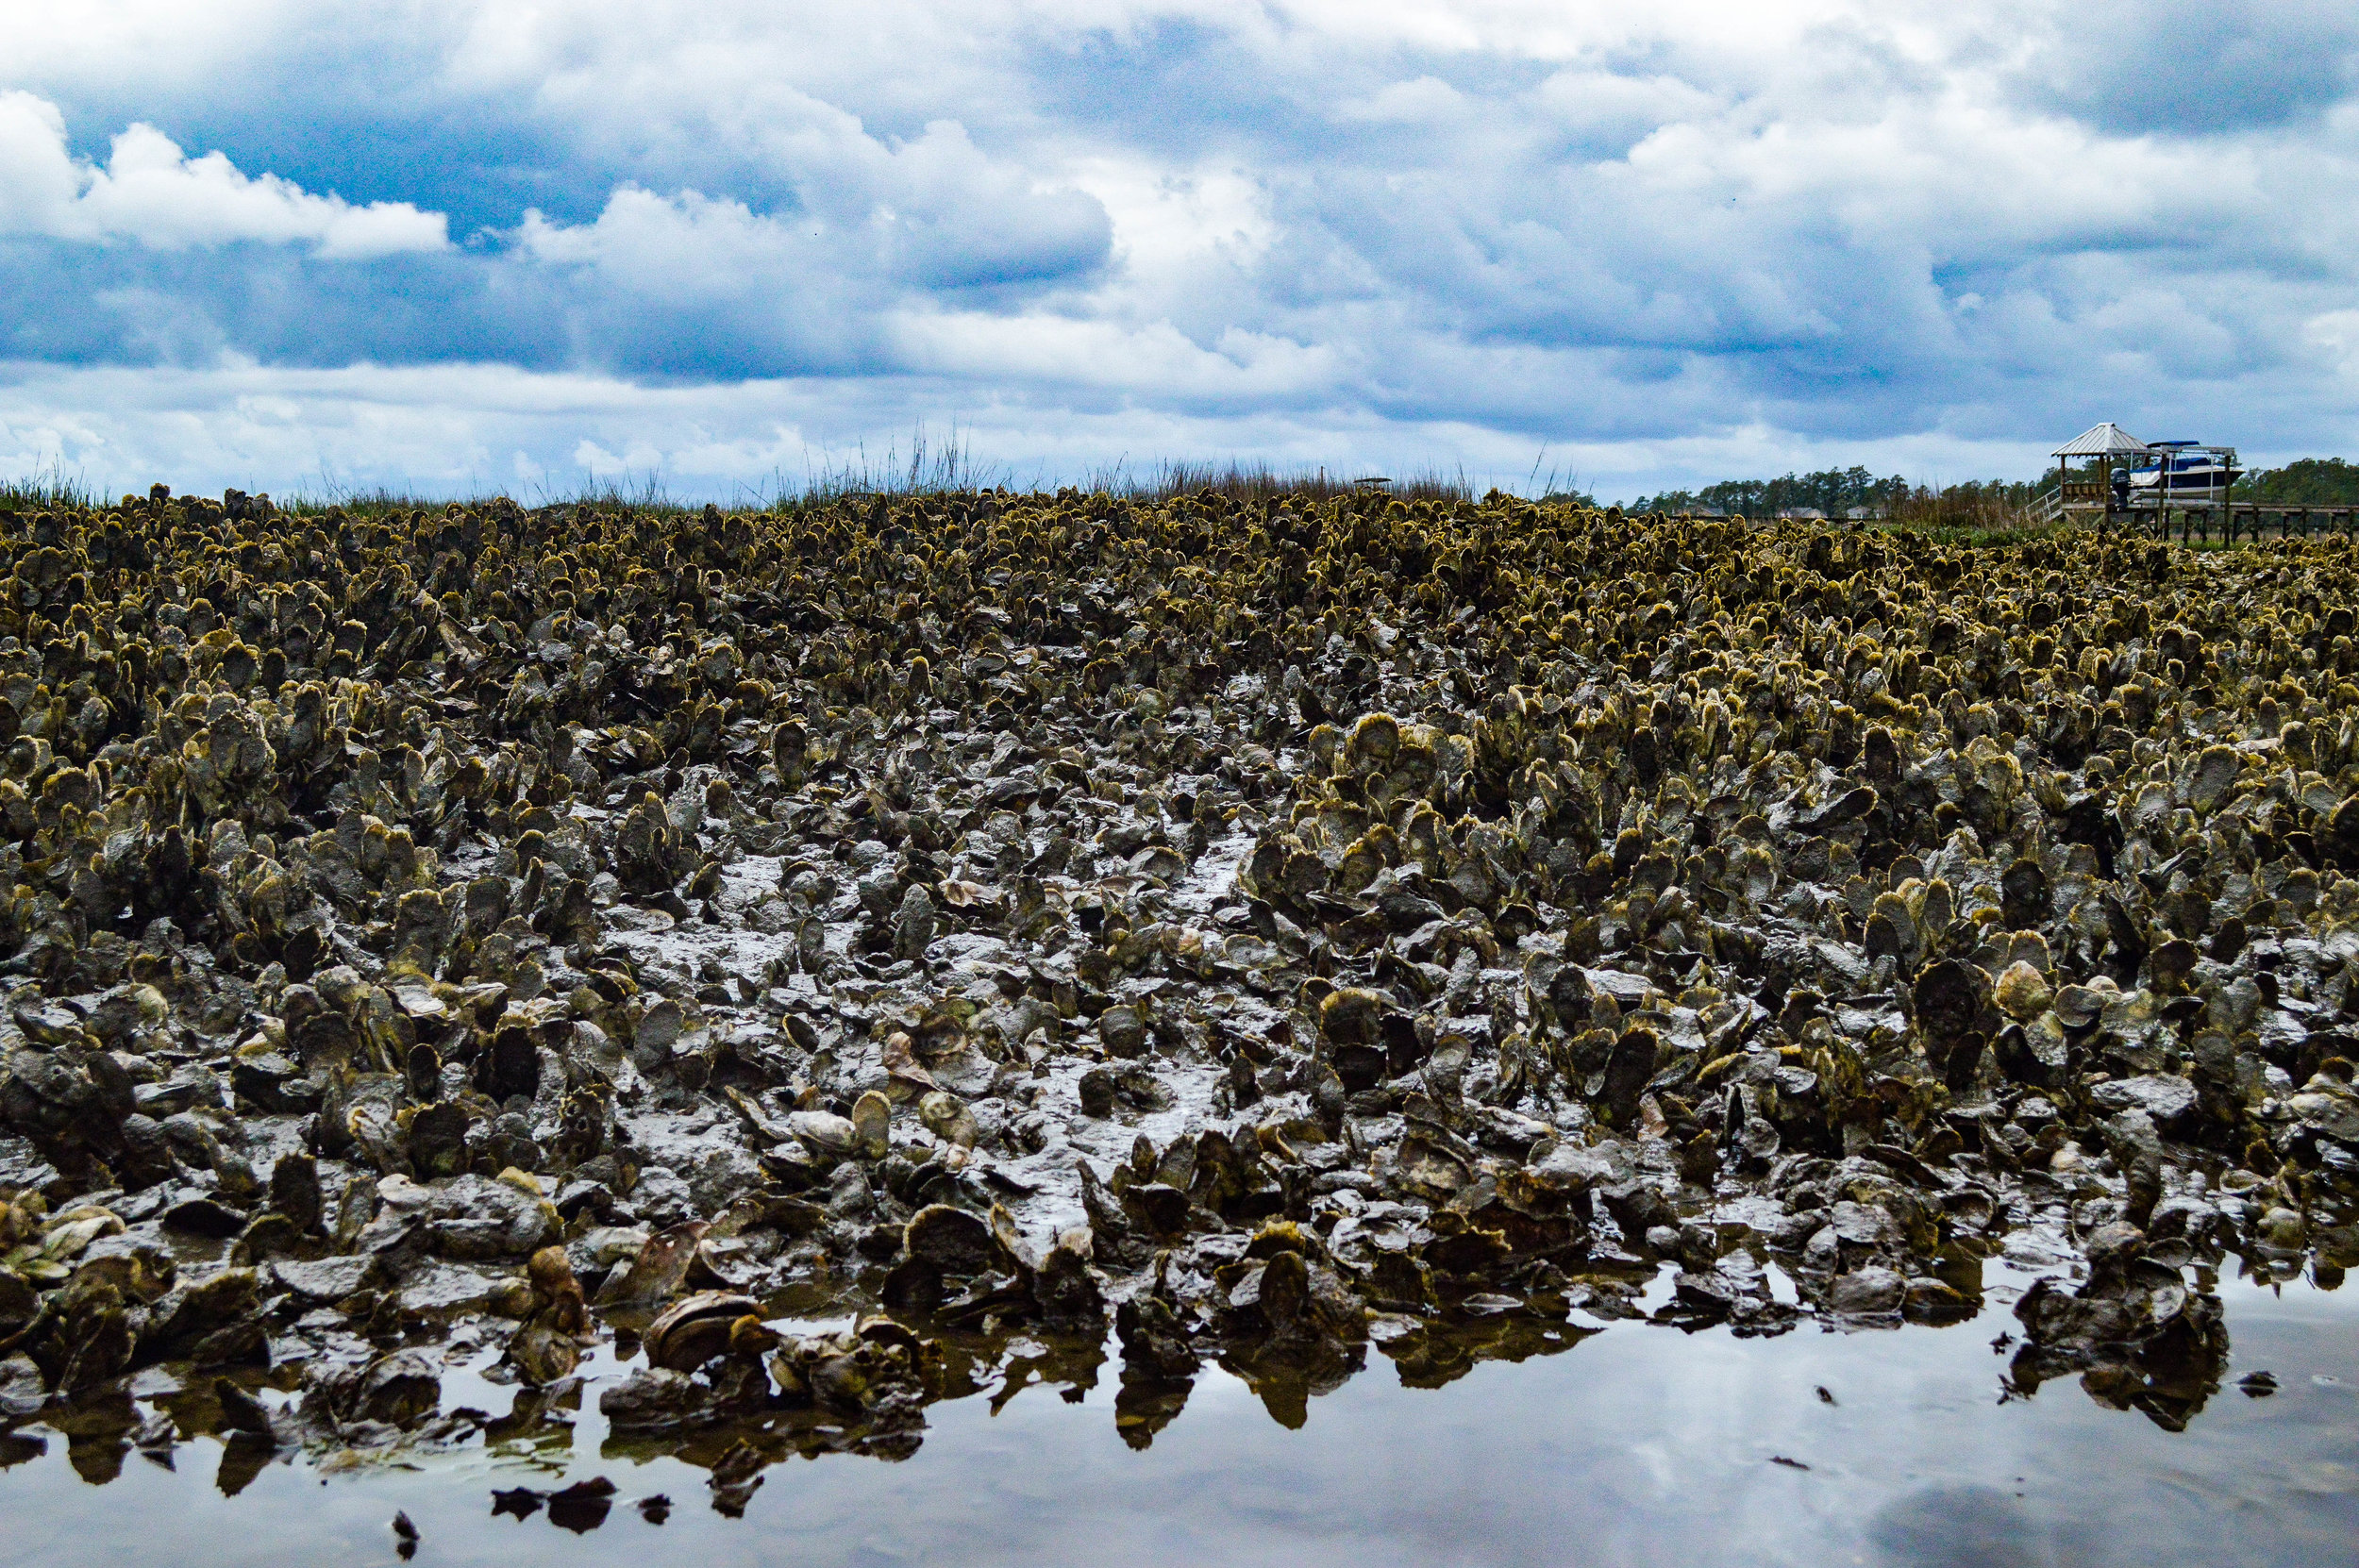 Oysters provide a critical ecosystem service to watersheds by 'filtering' out contaminants and pollutants from the water.